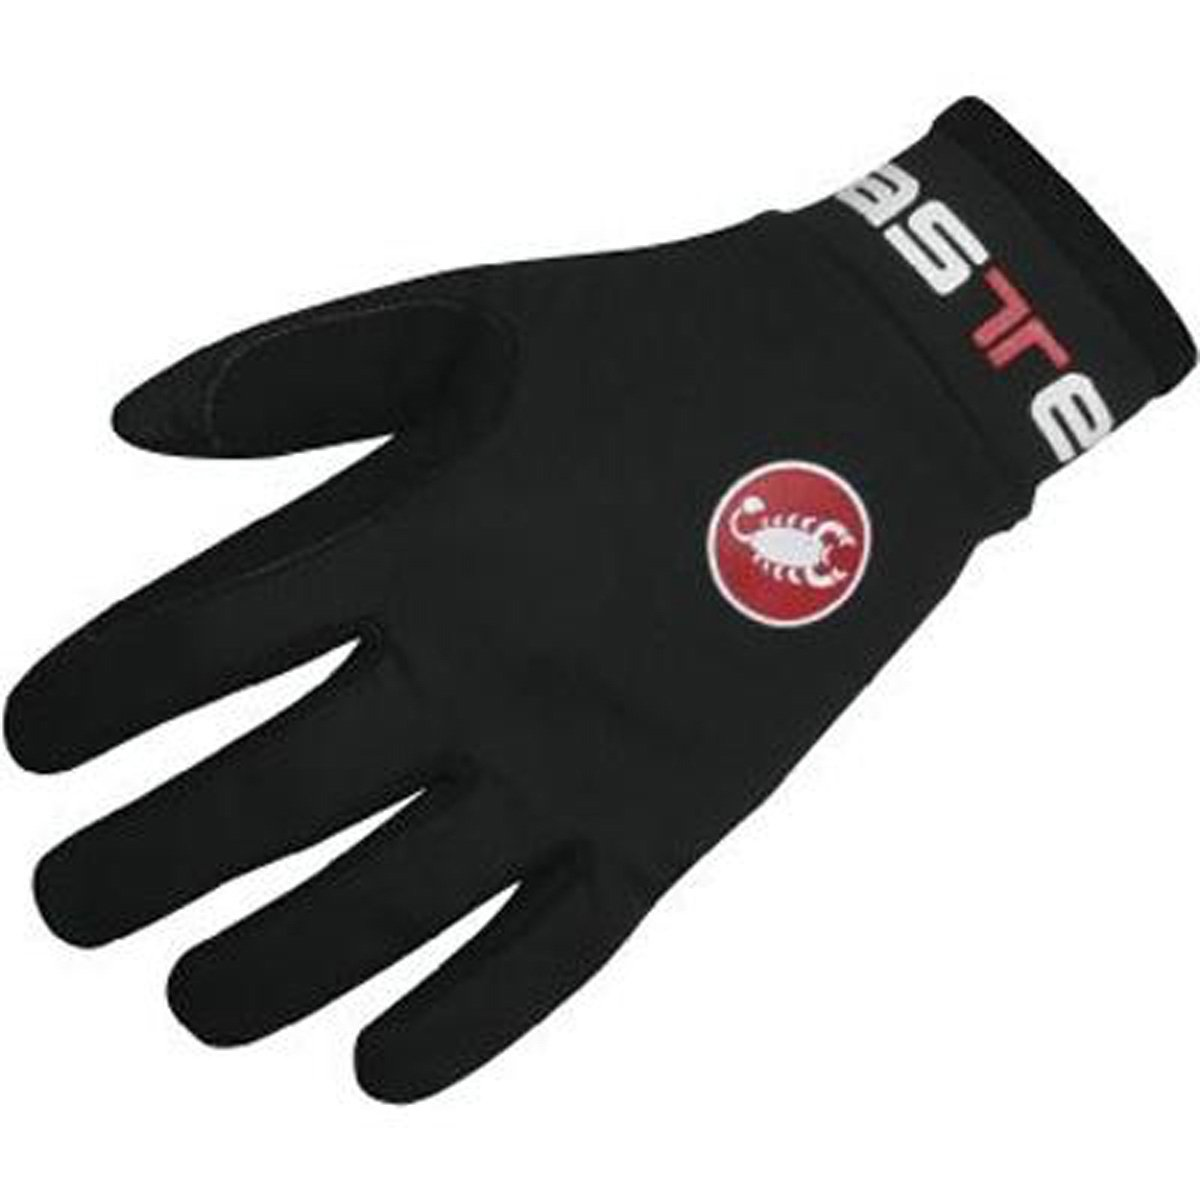 Castelli Lightness Glove Black, XXL